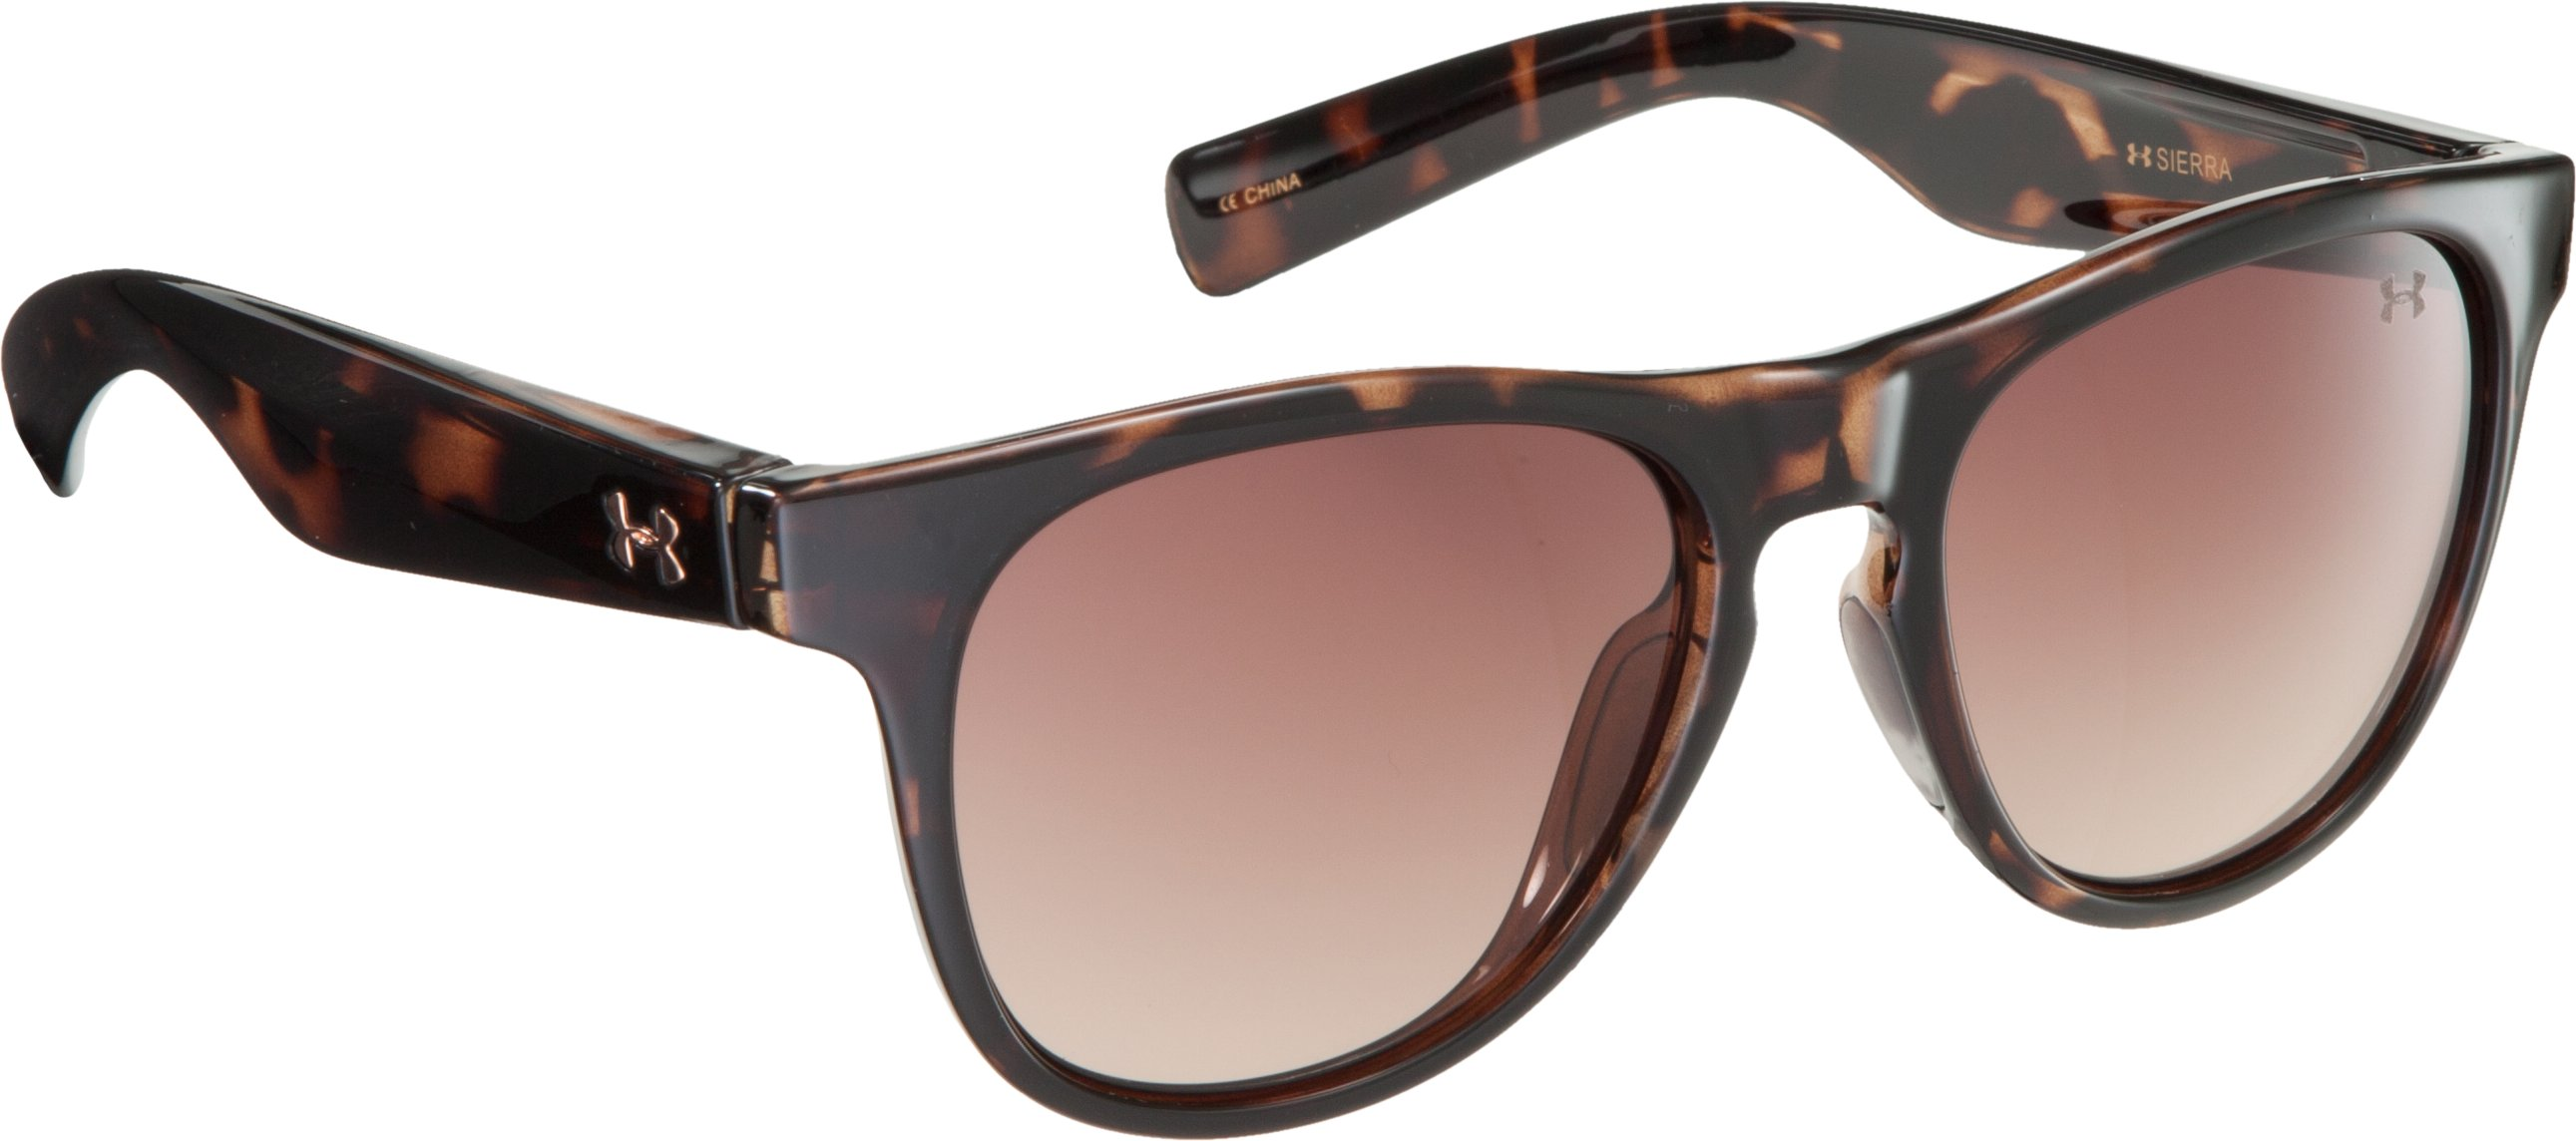 Women's UA Sierra Sunglasses, CRYSTAL TORT